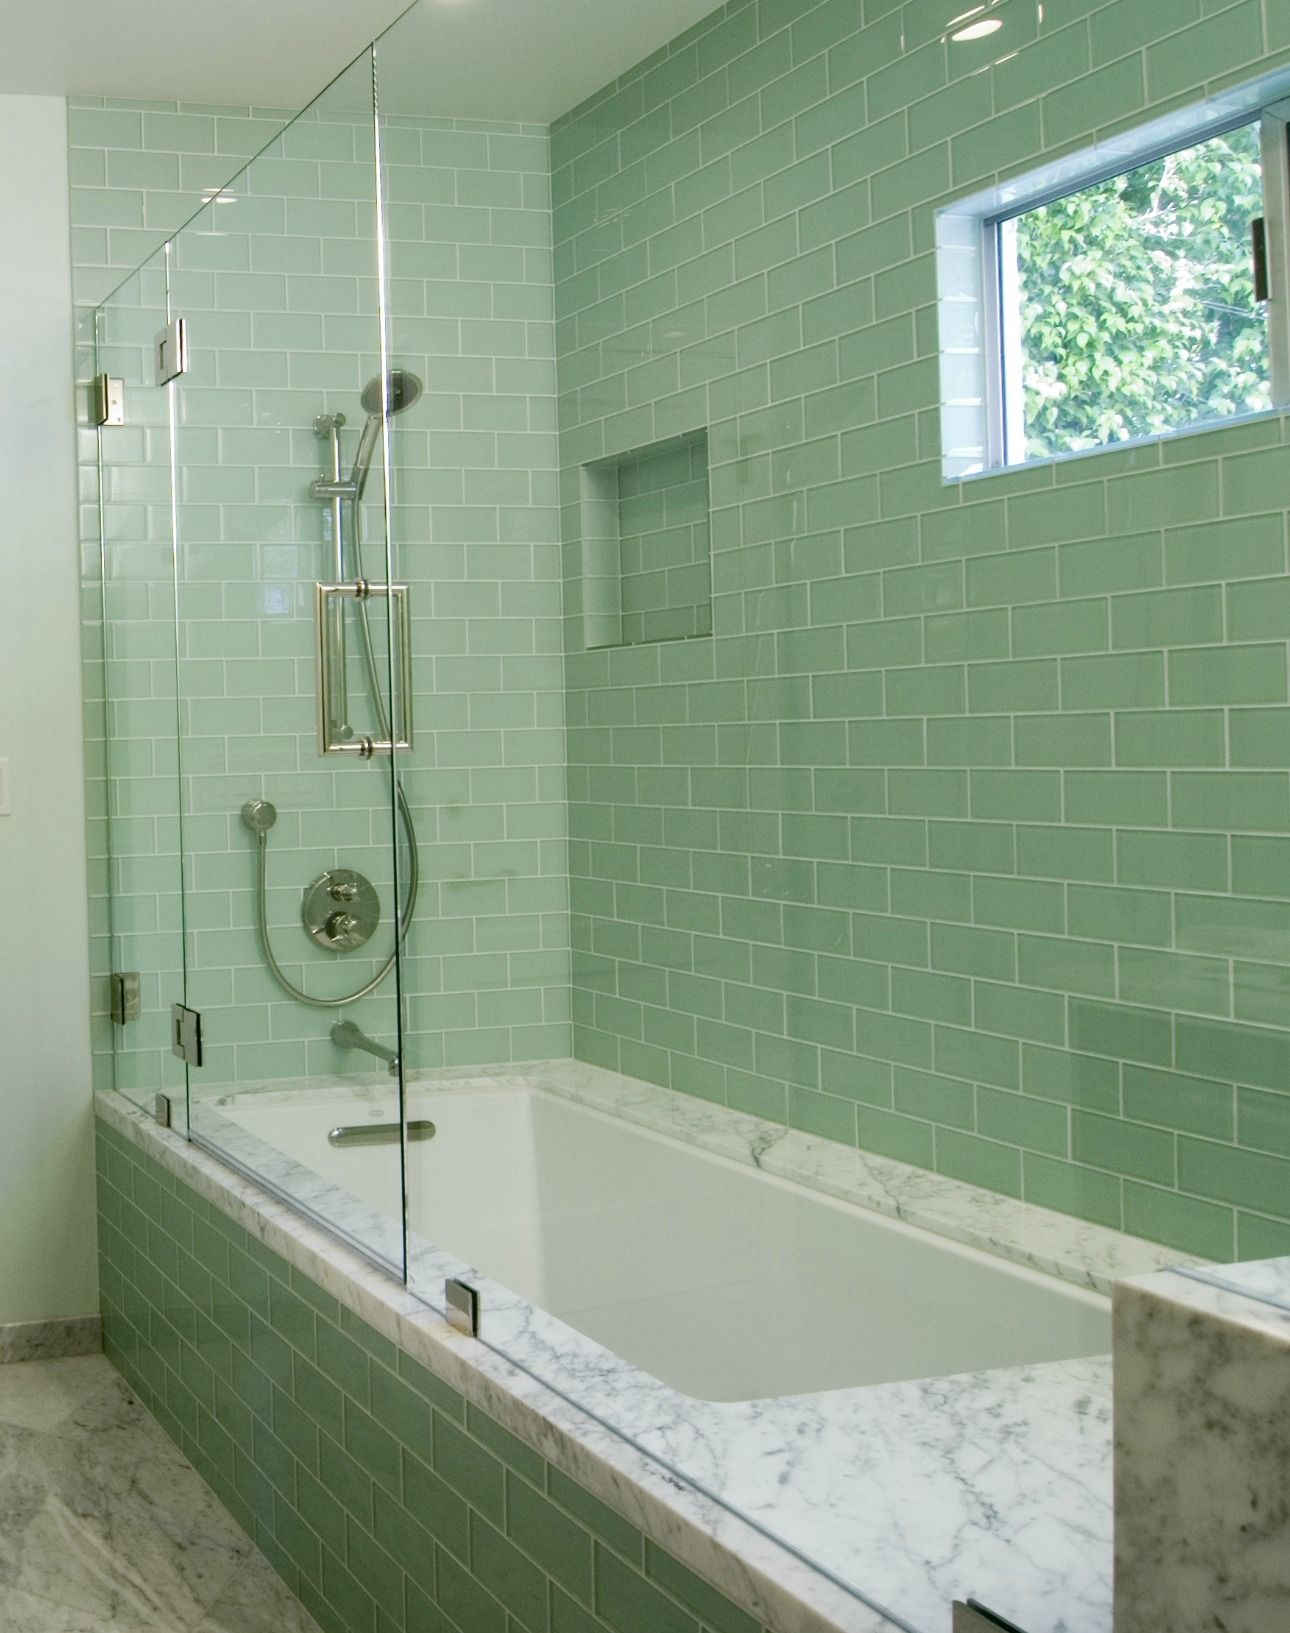 Terrific Glass Subway Tile For Your Bathroom And Kitchen Ideas